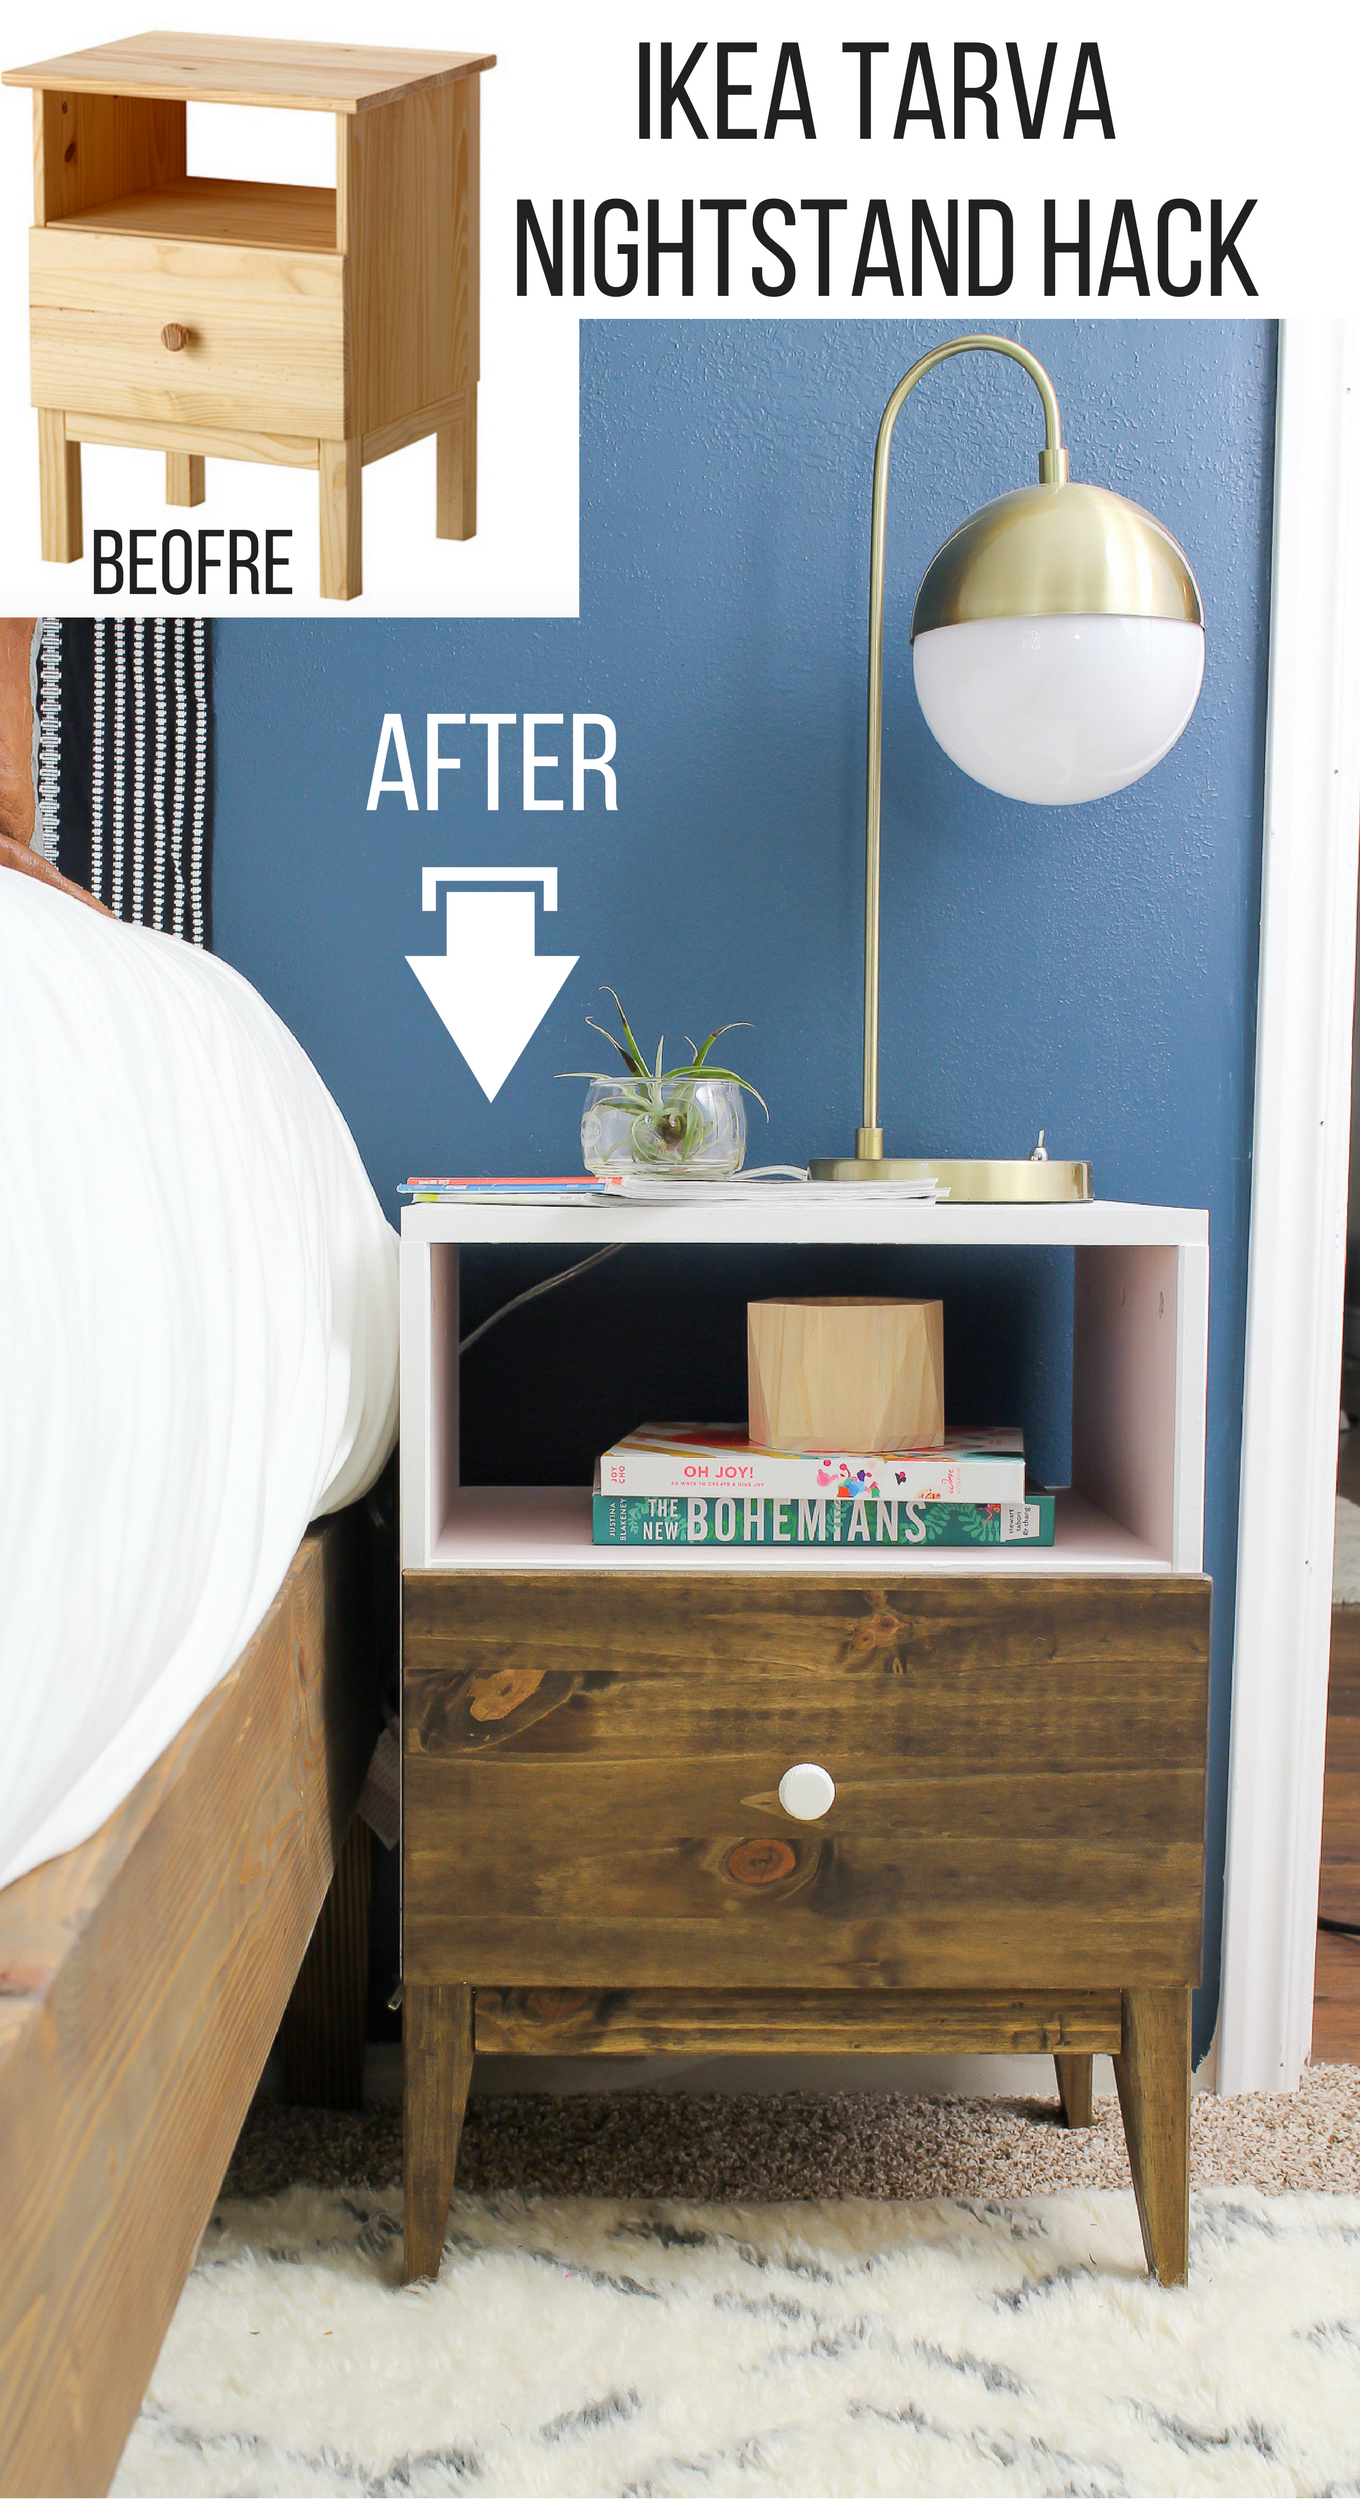 IKEA TARVA Nightstand Hack- IKEA did it again! | Home | Pinterest ...